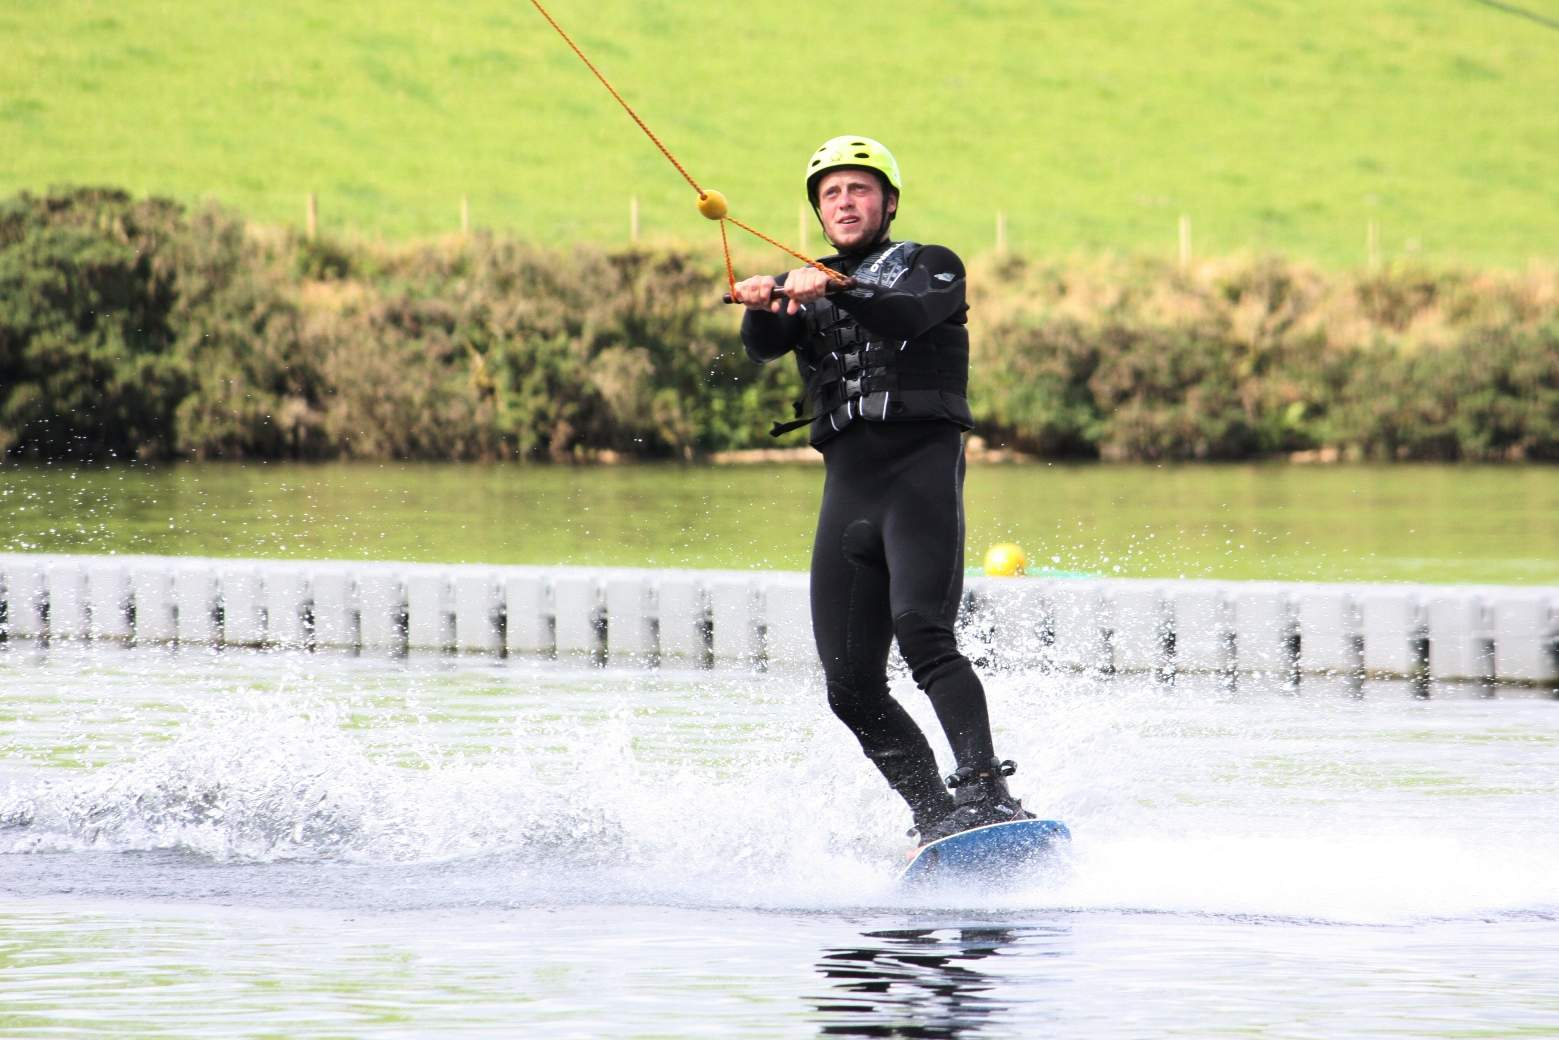 A fantastic selection of water sport activities to try at Siblyback Lake.